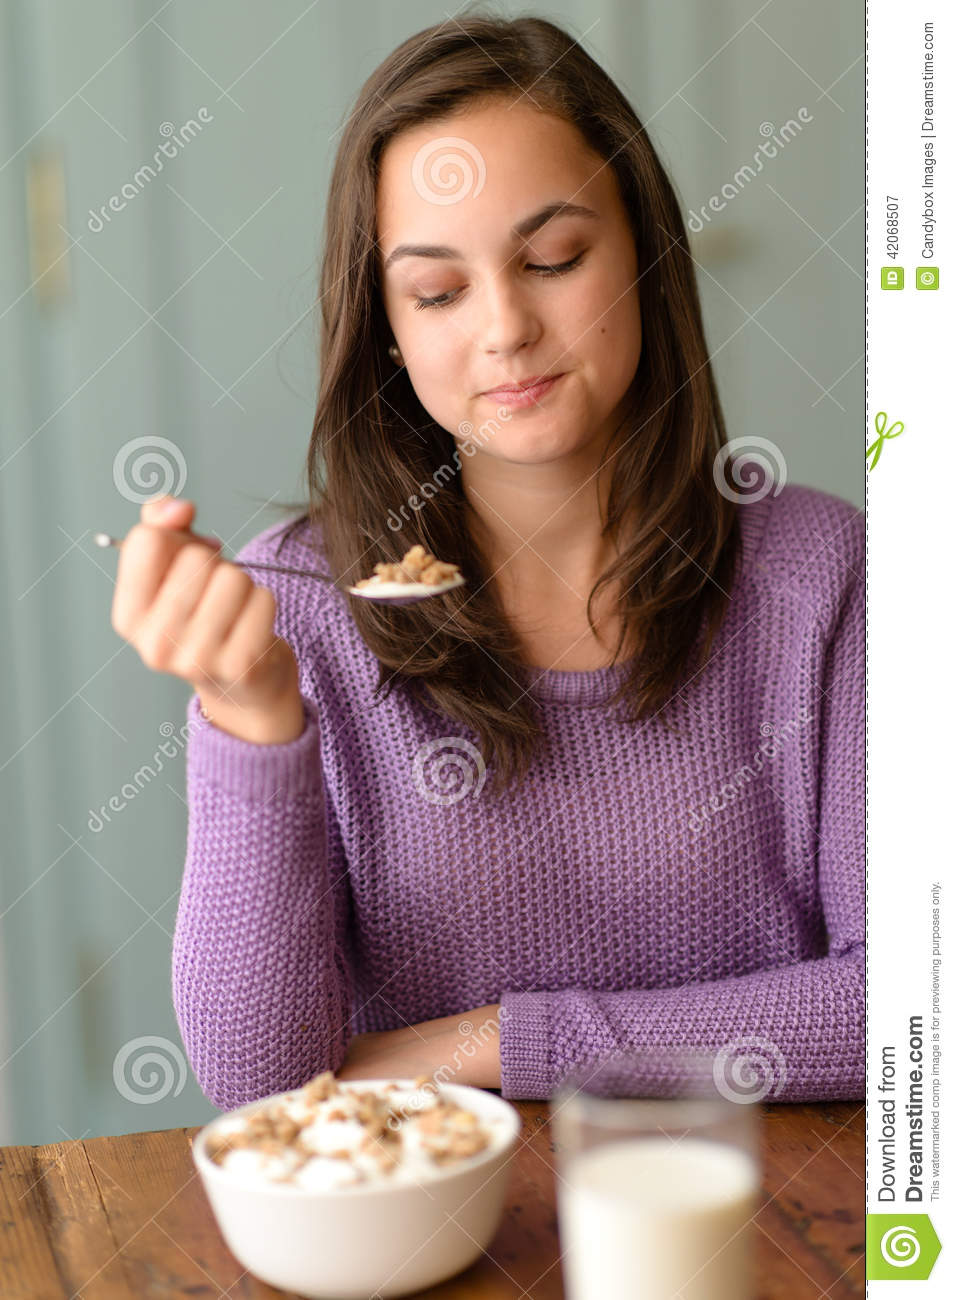 Young Woman Eating Healthy Cereal Breakfast Stock Image